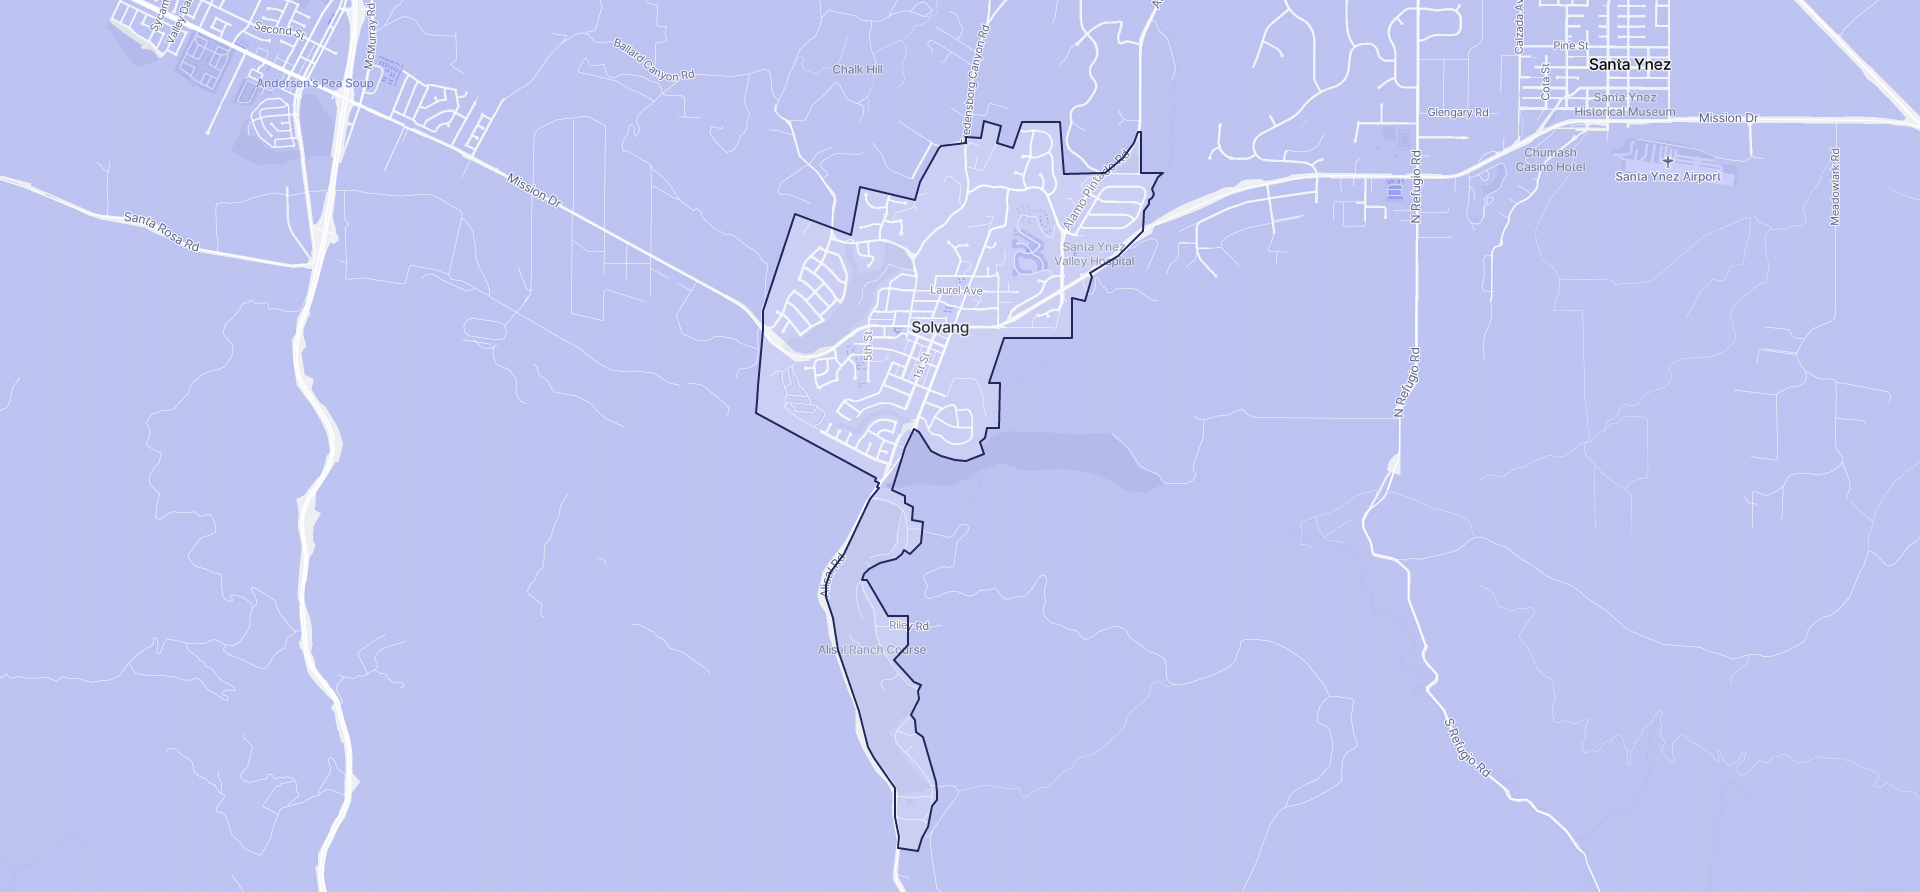 Image of Solvang boundaries on a map.